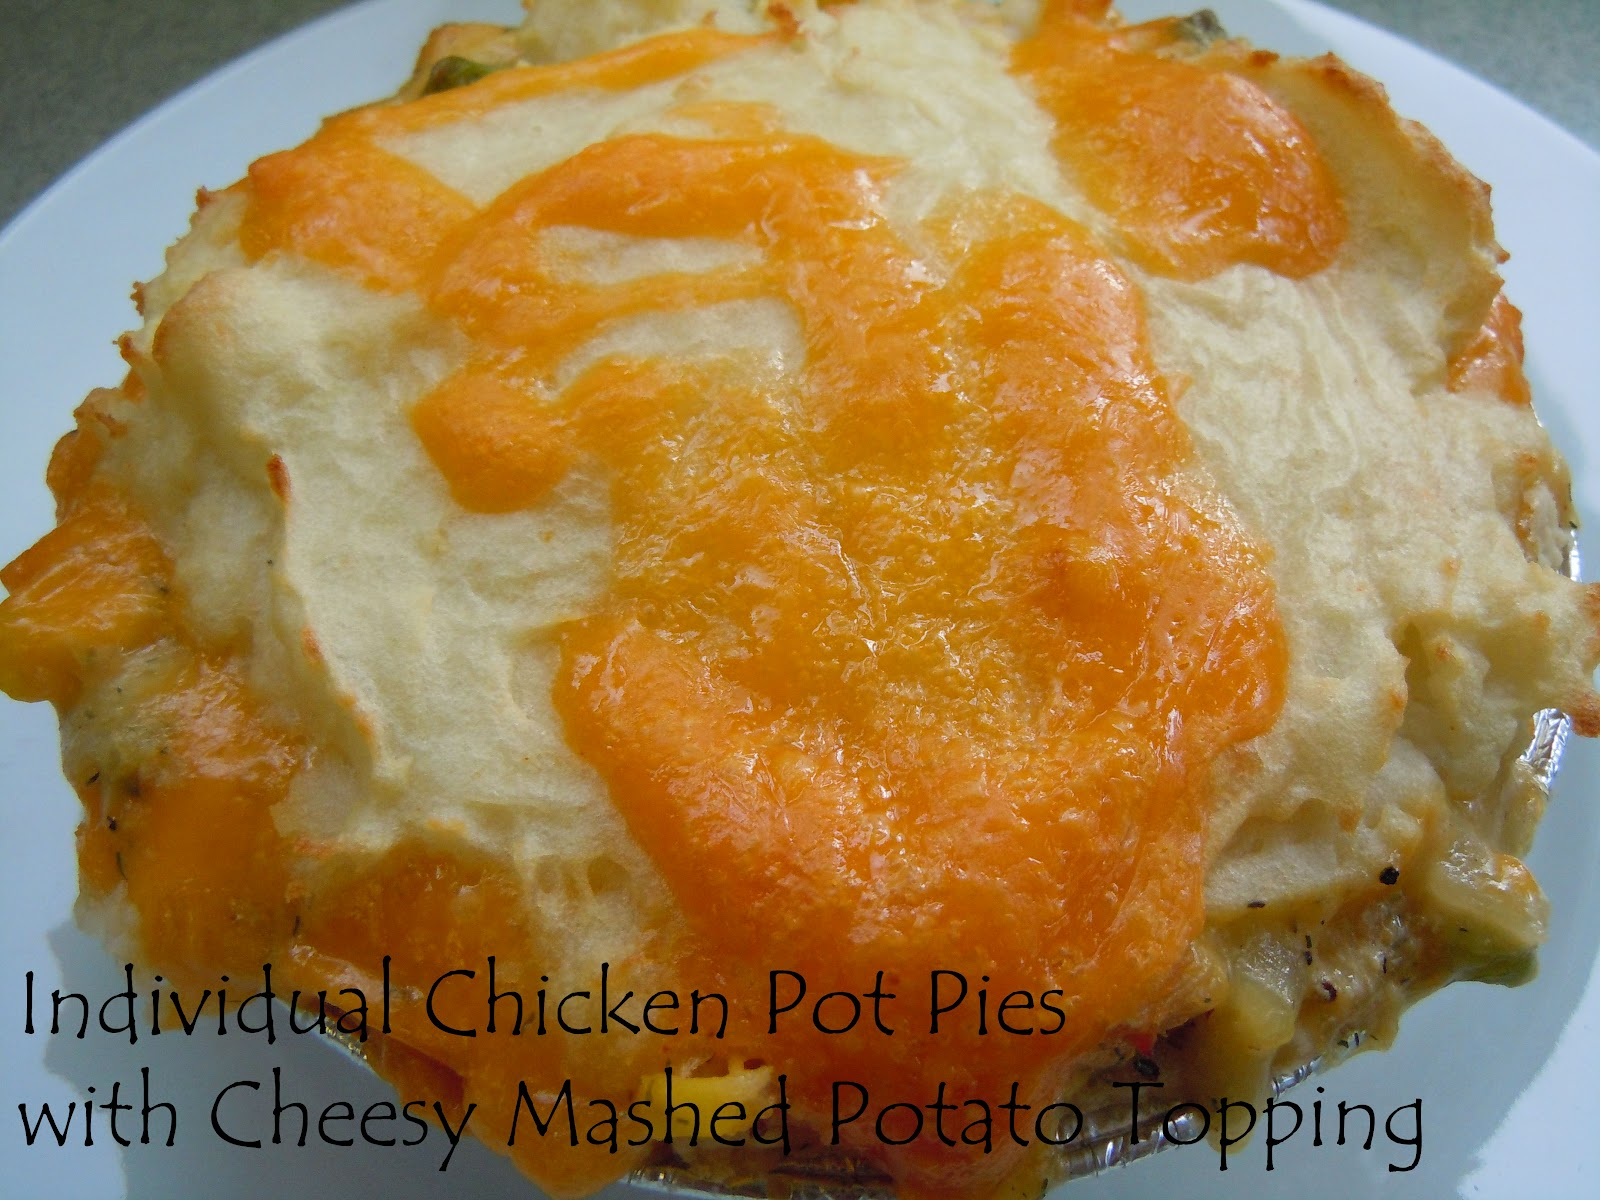 ... Things: Individual Chicken Pot Pies with Cheesy Mashed Potato Topping